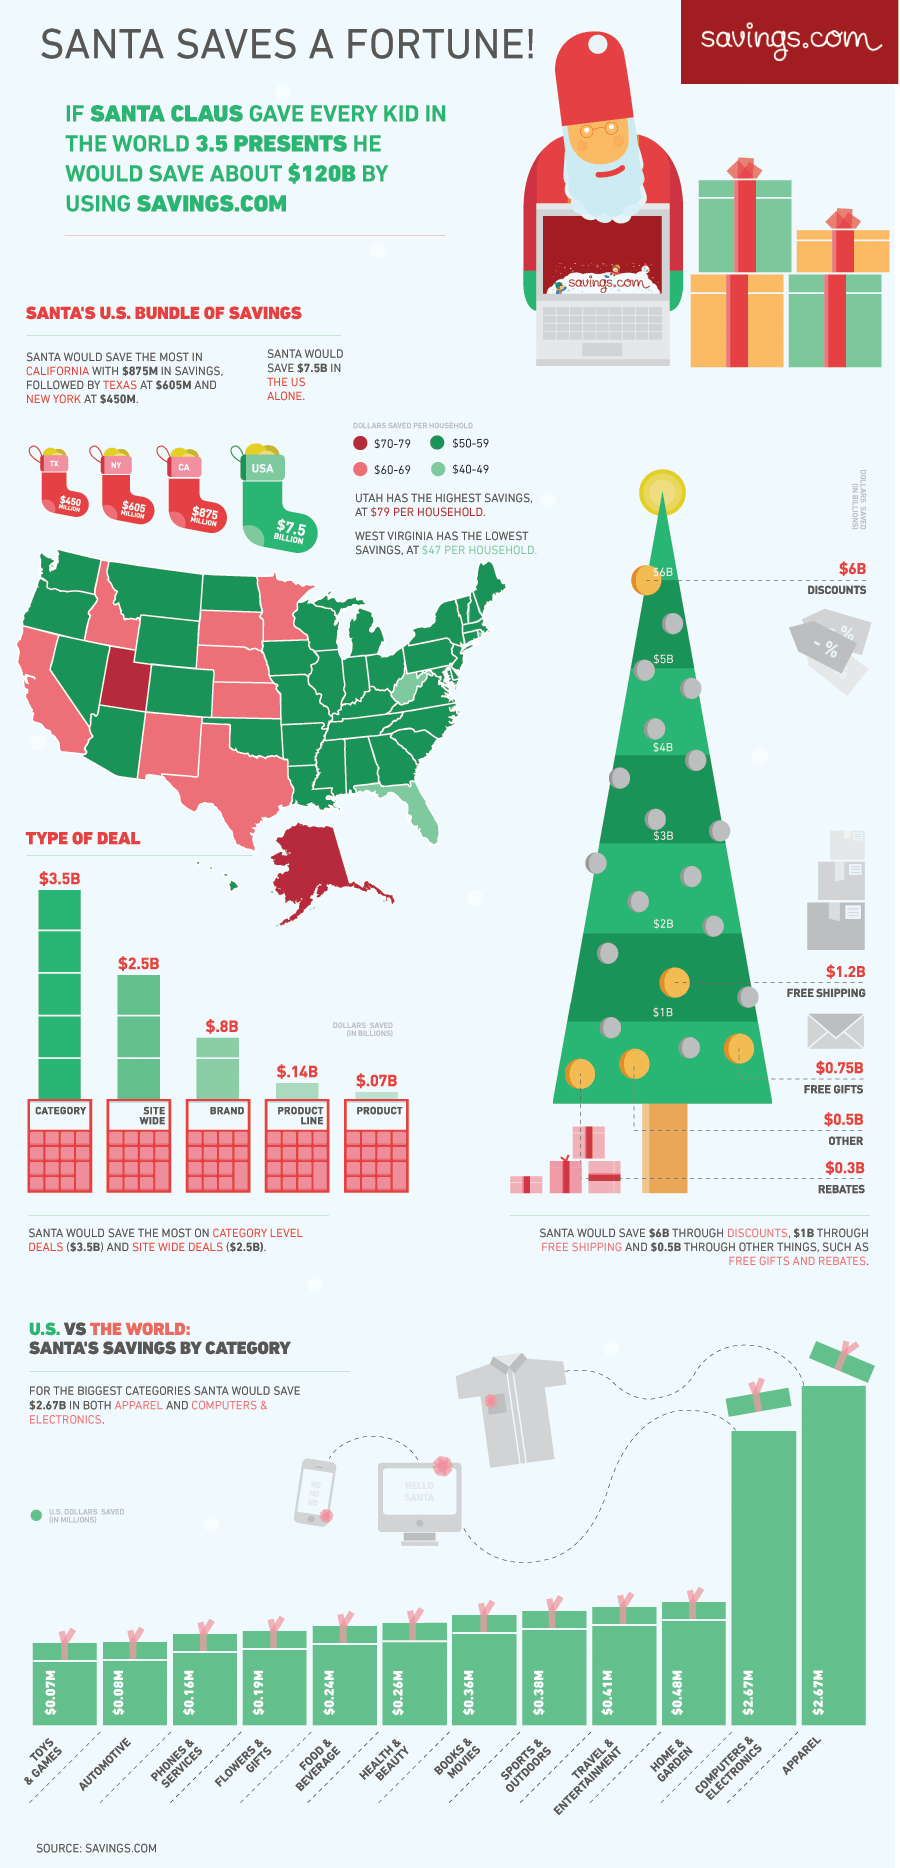 Santa Saves Using Savings.com Infographic